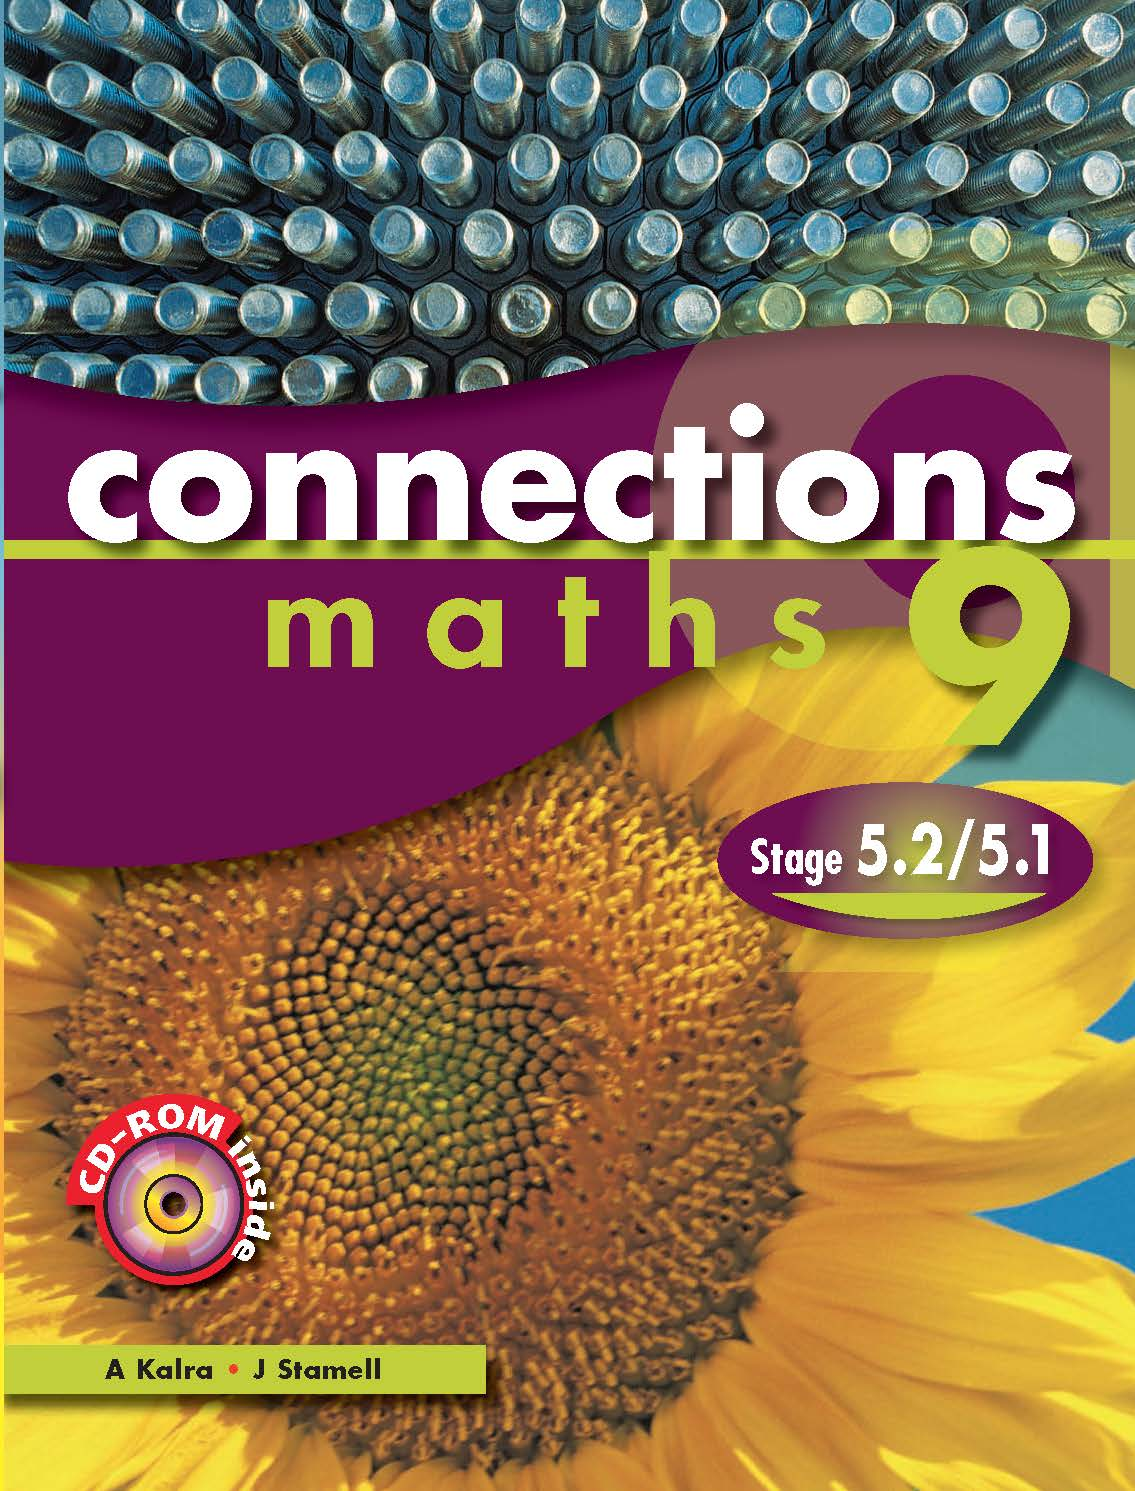 Pascal Press Connections Maths 9 Stage 5.2/5.1 Year 9